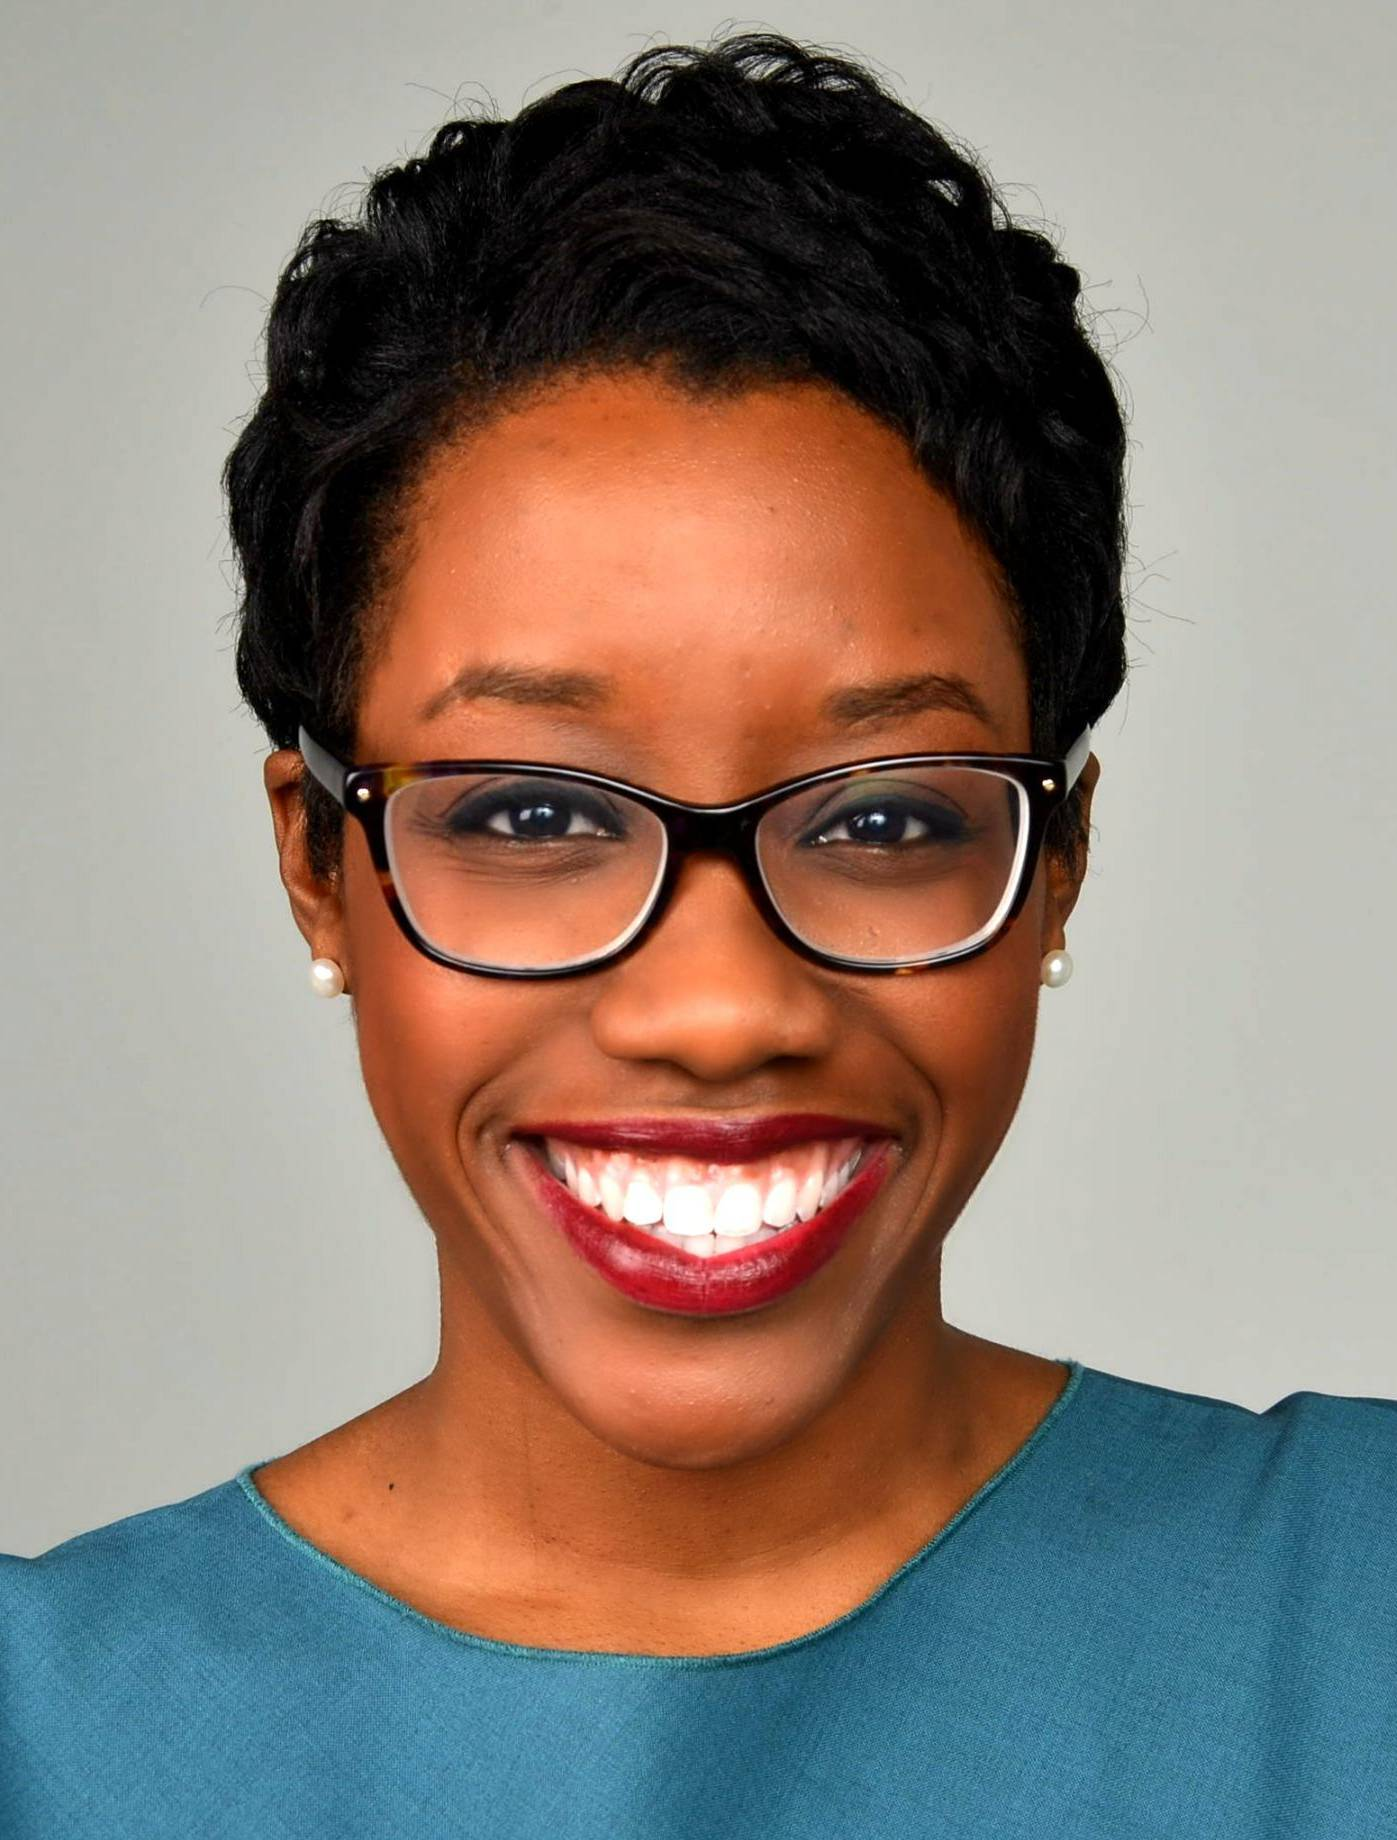 Lauren Underwood, running for 14th District U.S. Representative